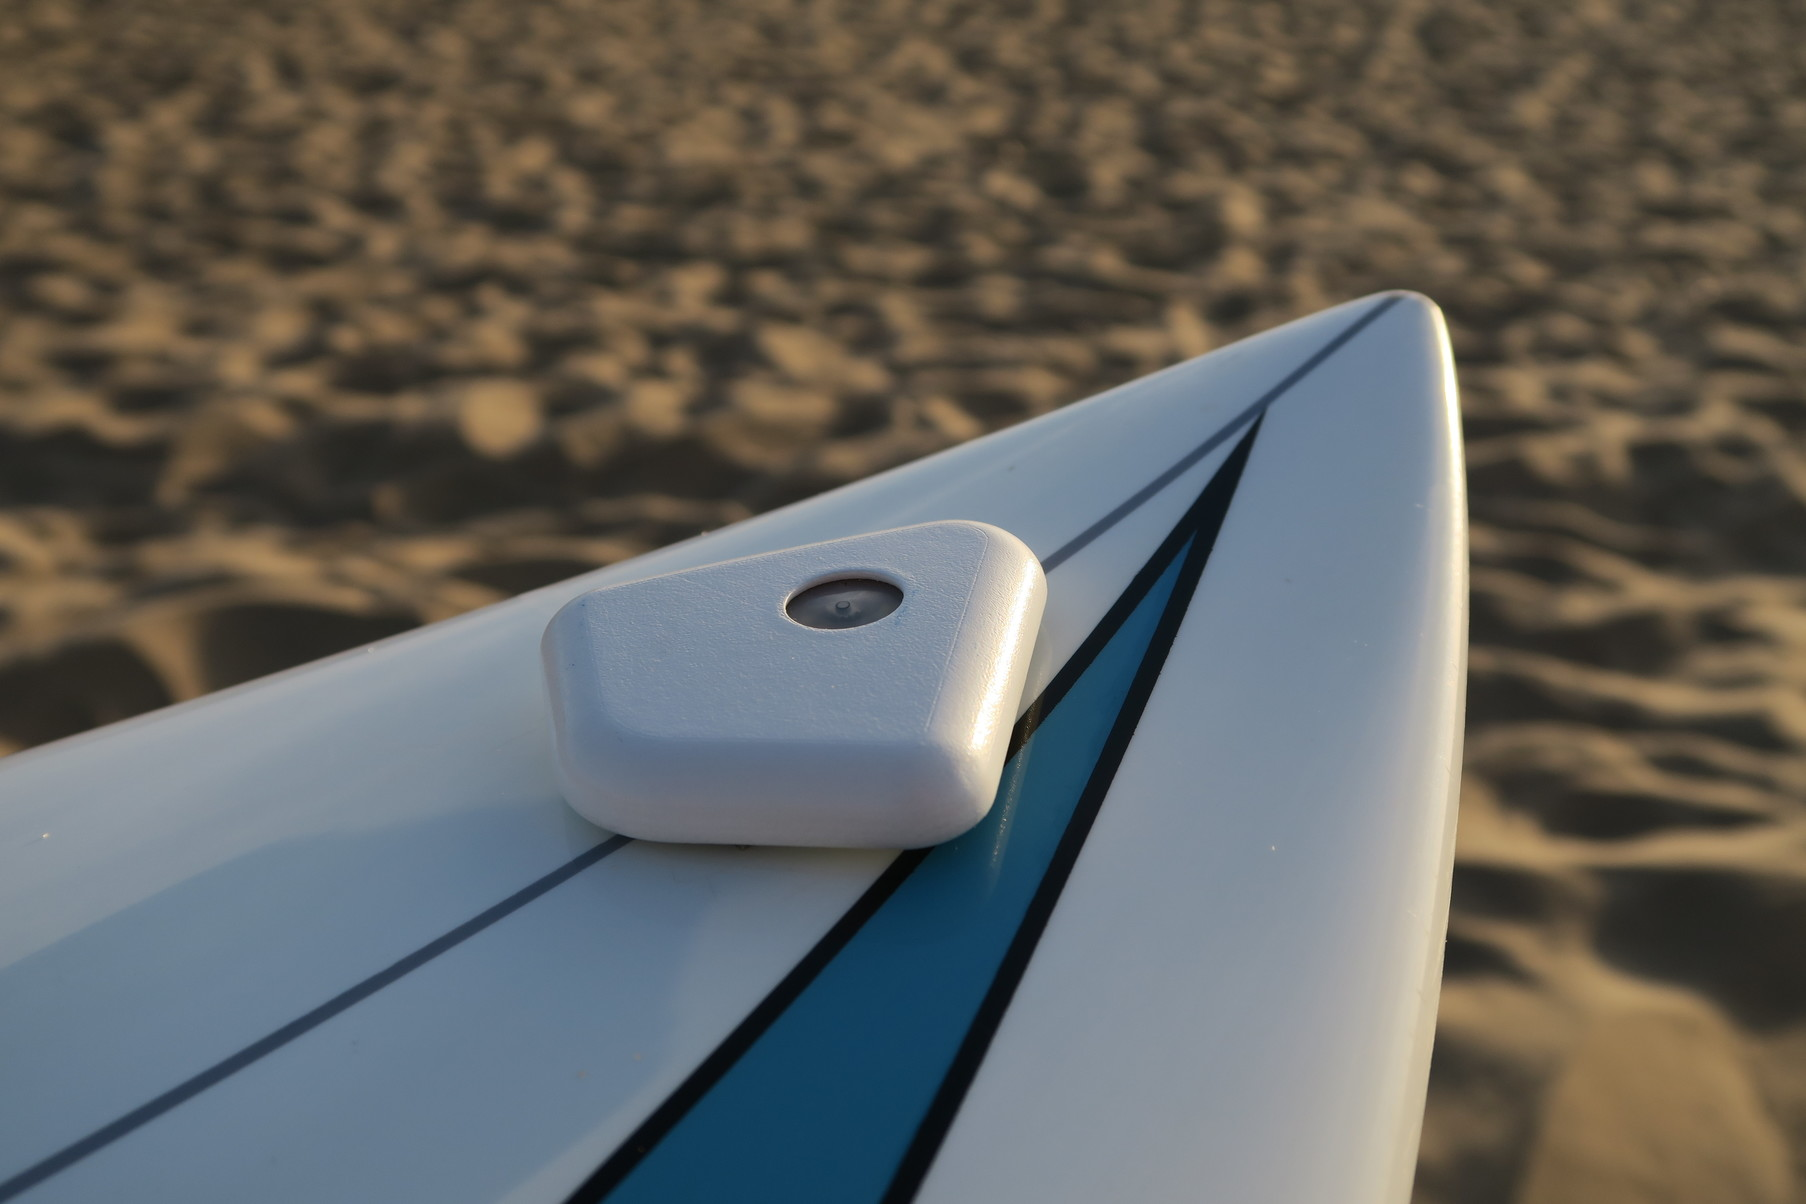 SCAD mockup on surfboard